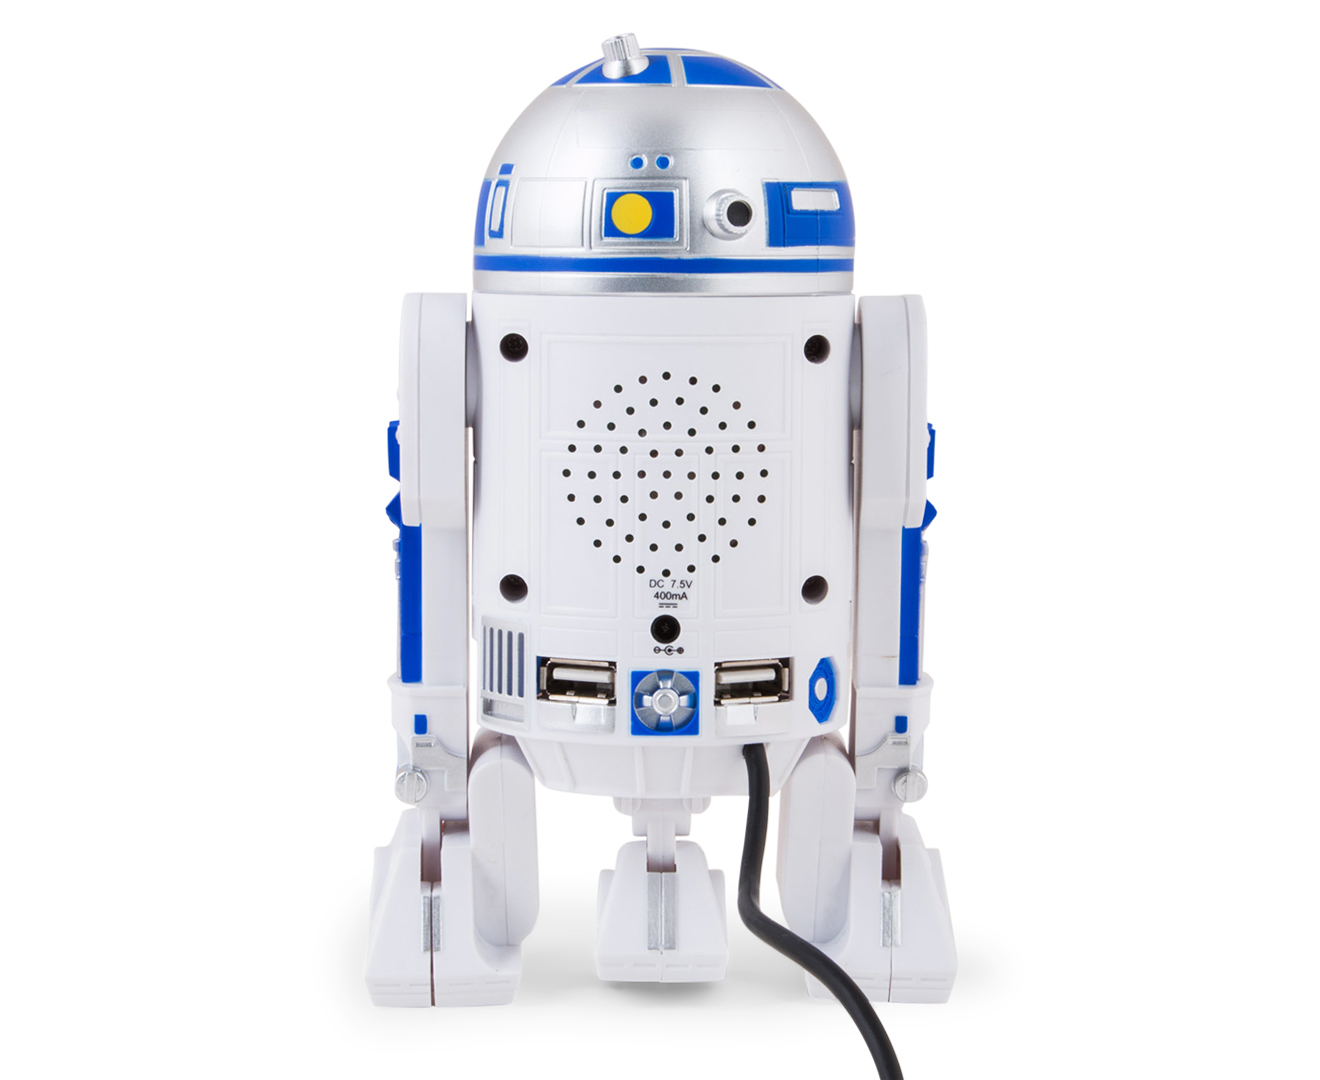 star wars r2 d2 4 port usb hub. Black Bedroom Furniture Sets. Home Design Ideas